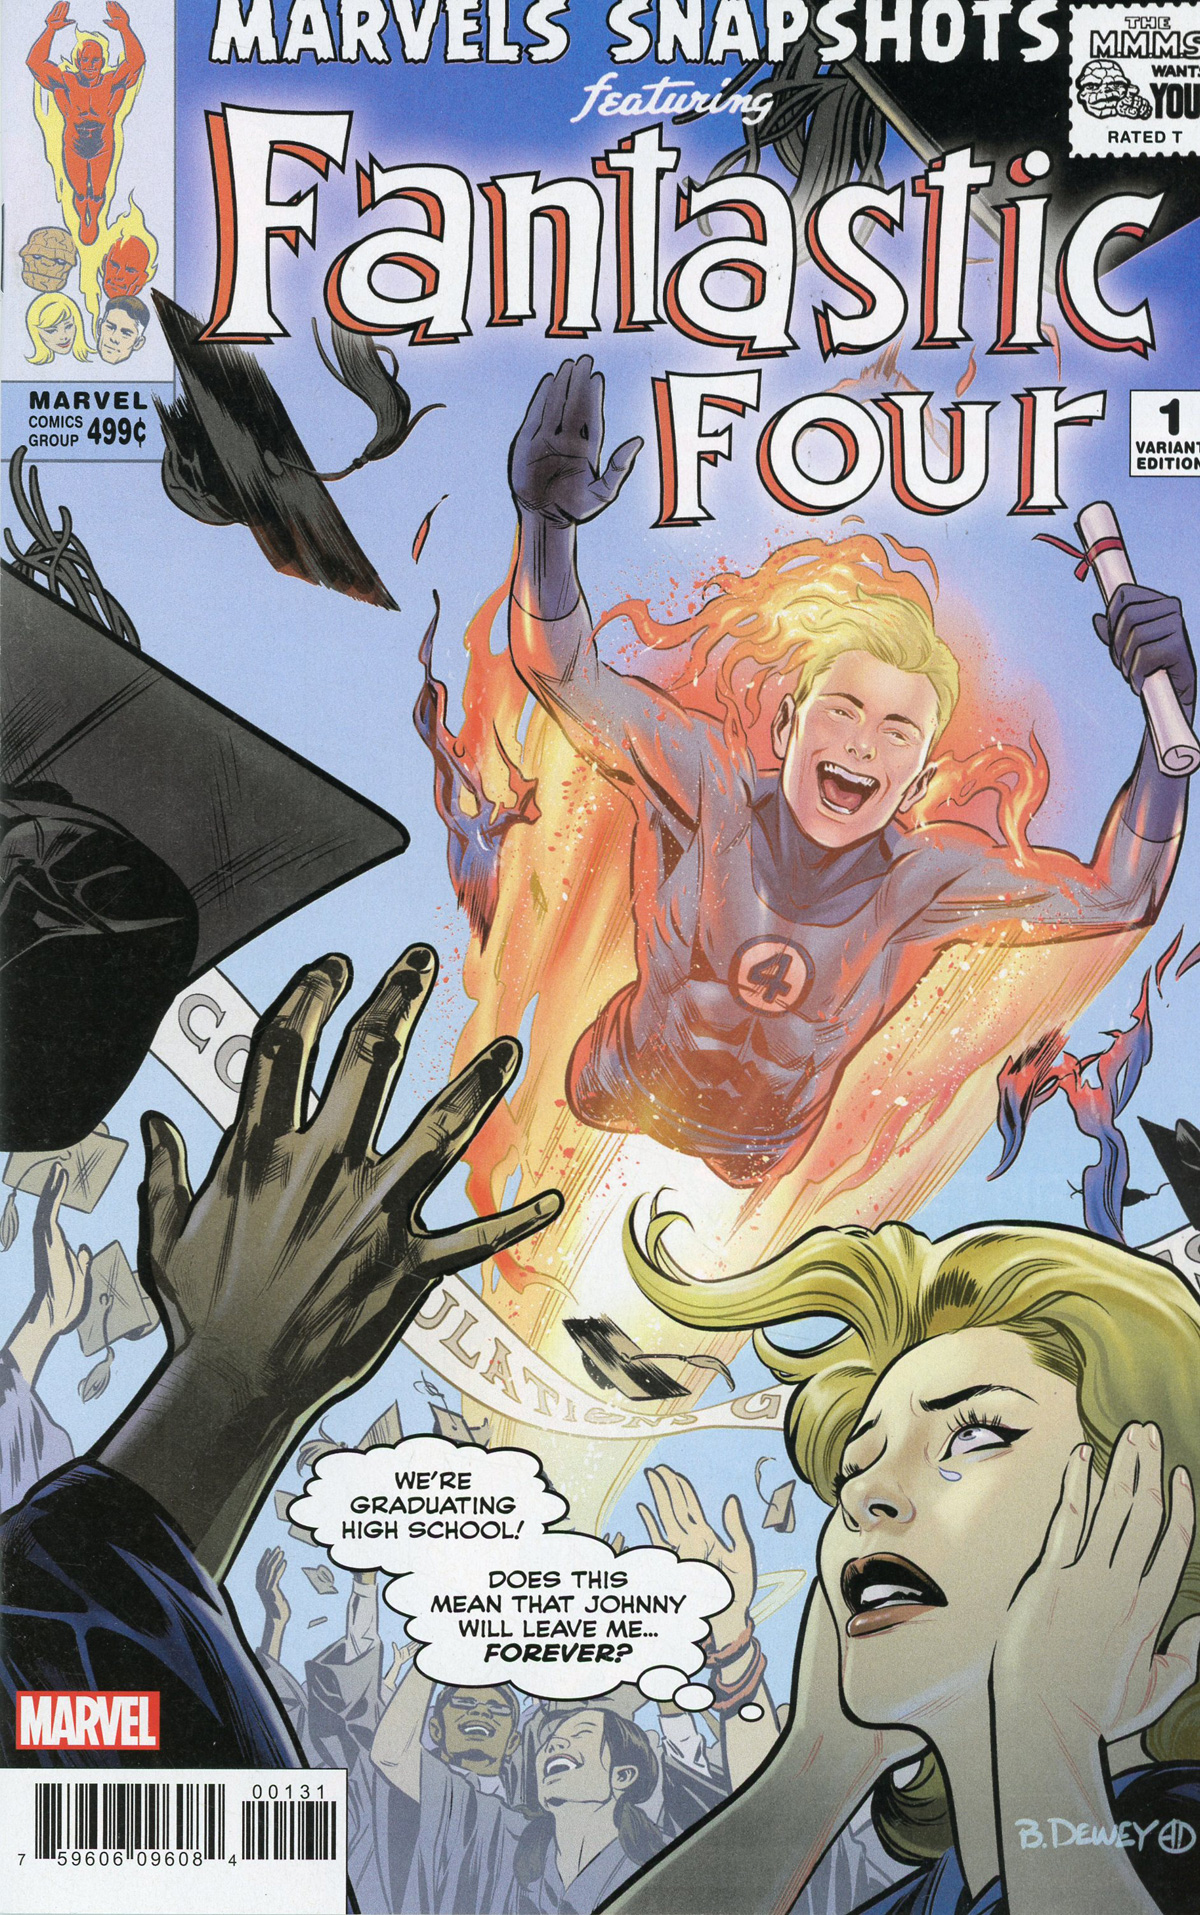 Fantastic Four Marvels Snapshots #1 Cover B Variant Benjamin Dewey Cover